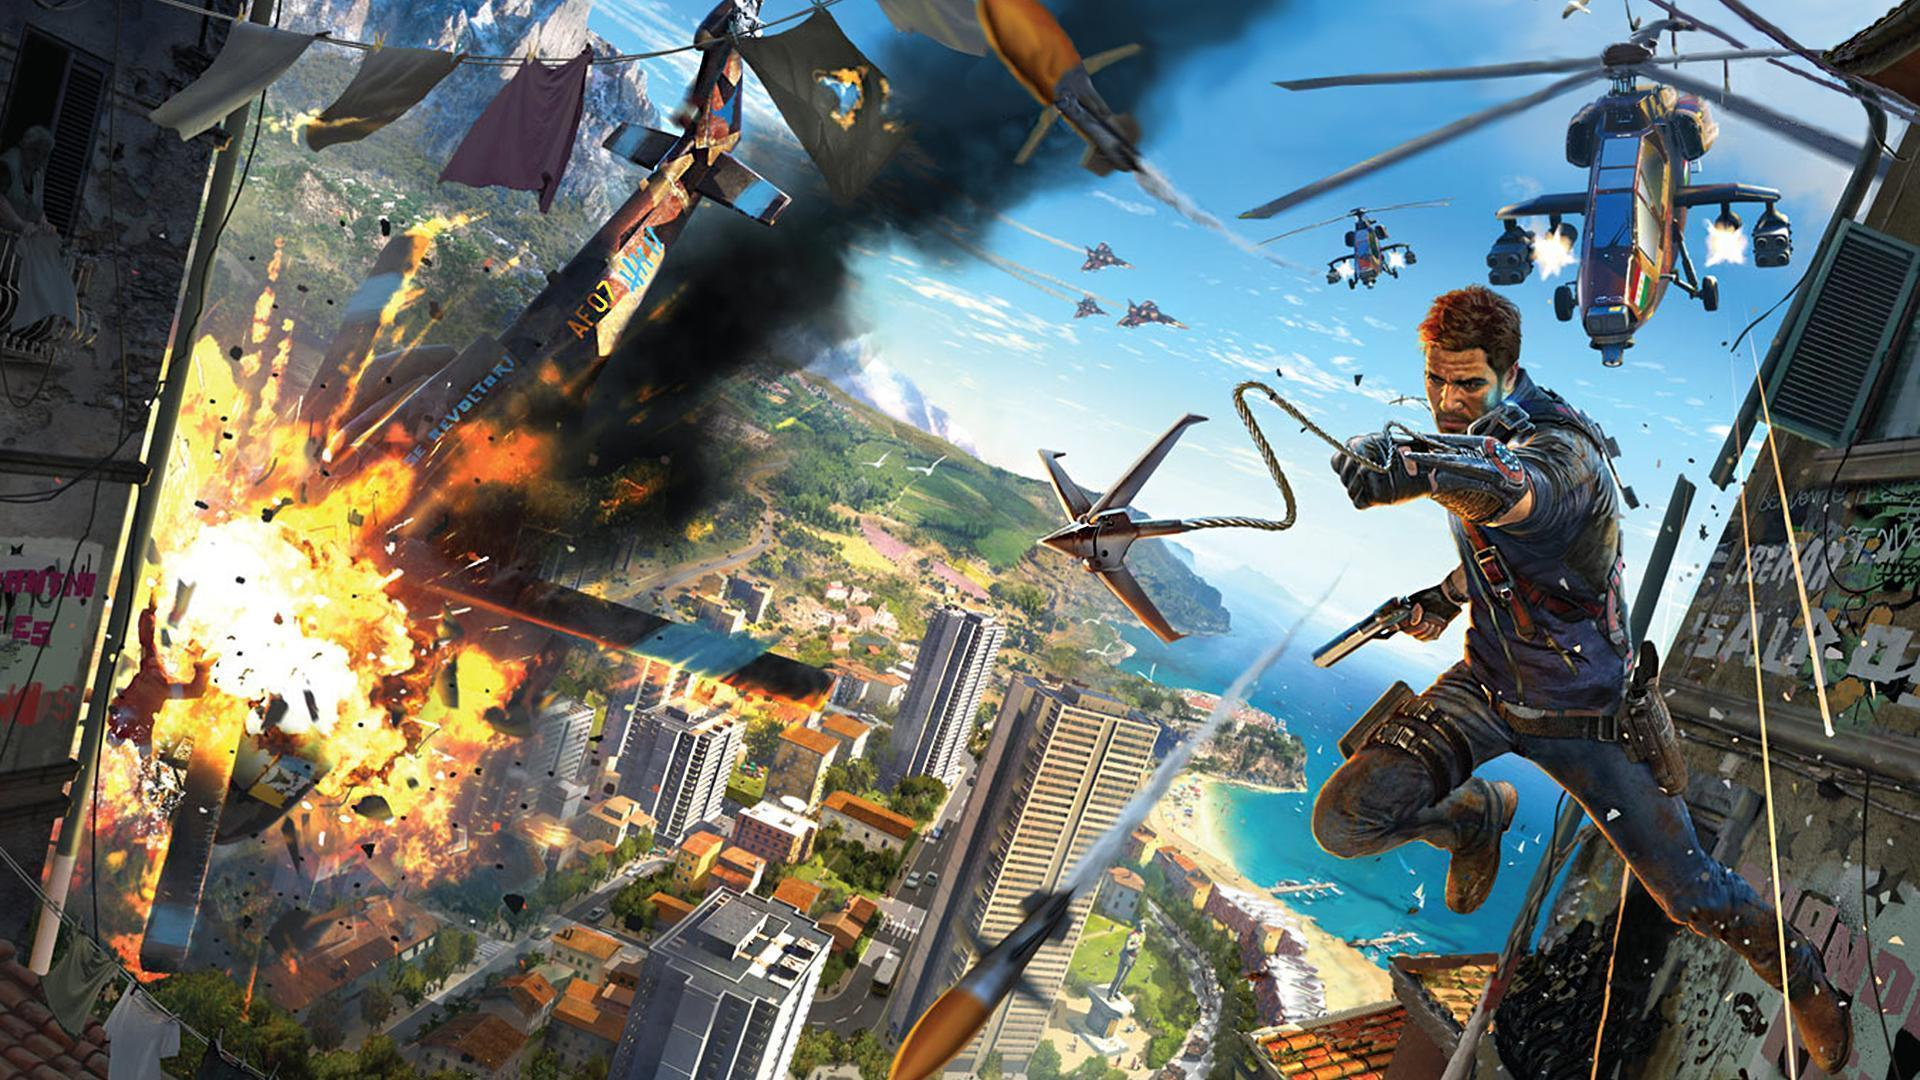 Just Cause 3 Wallpapers - Top Free Just Cause 3 Backgrounds - WallpaperAccess